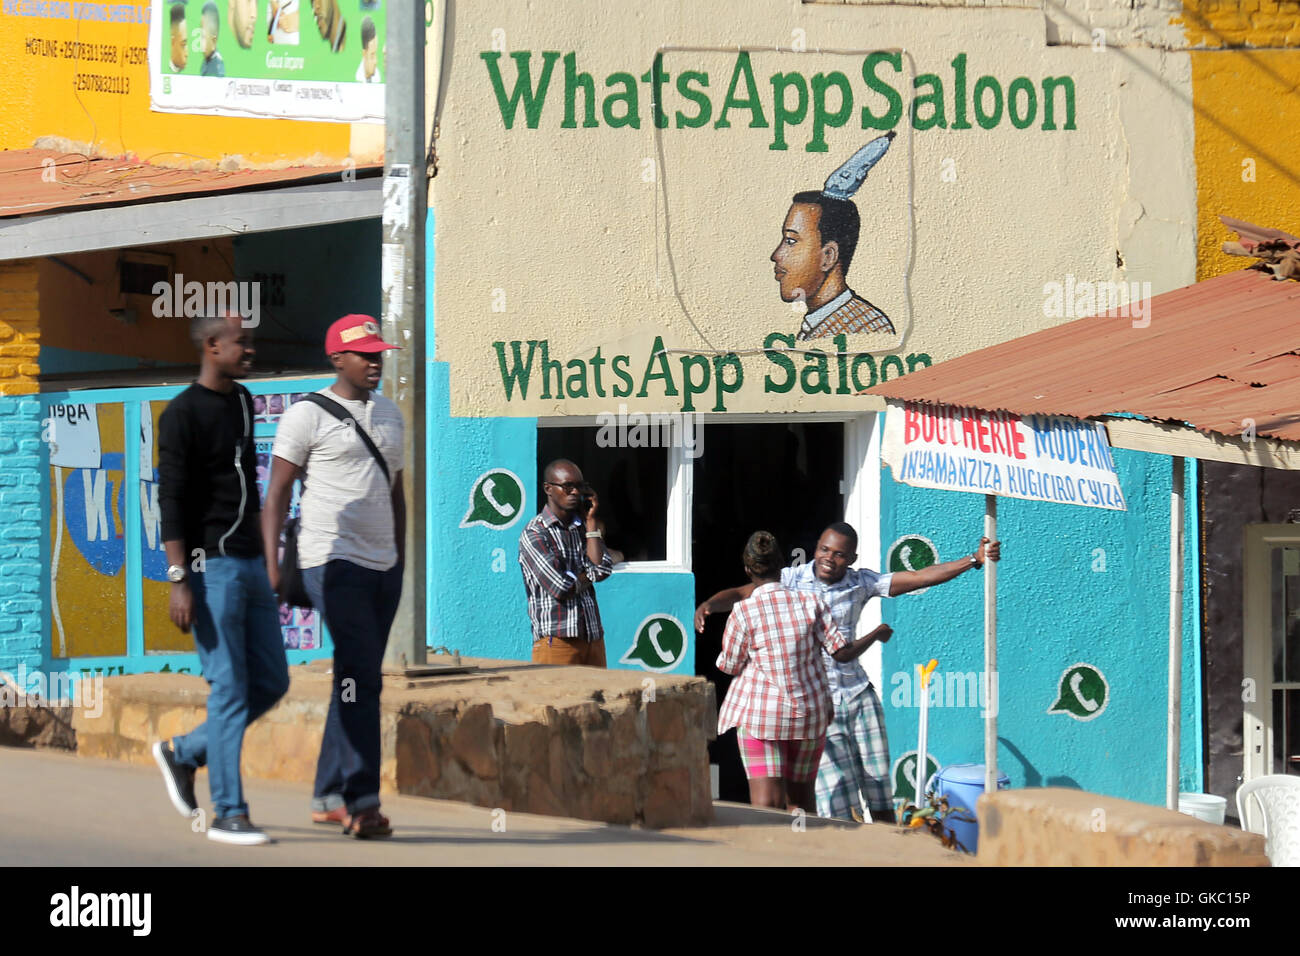 Men´s hairdressers saloon named after the WhatsApp messenger in Kigali, Rwanda, Africa. - Stock Image